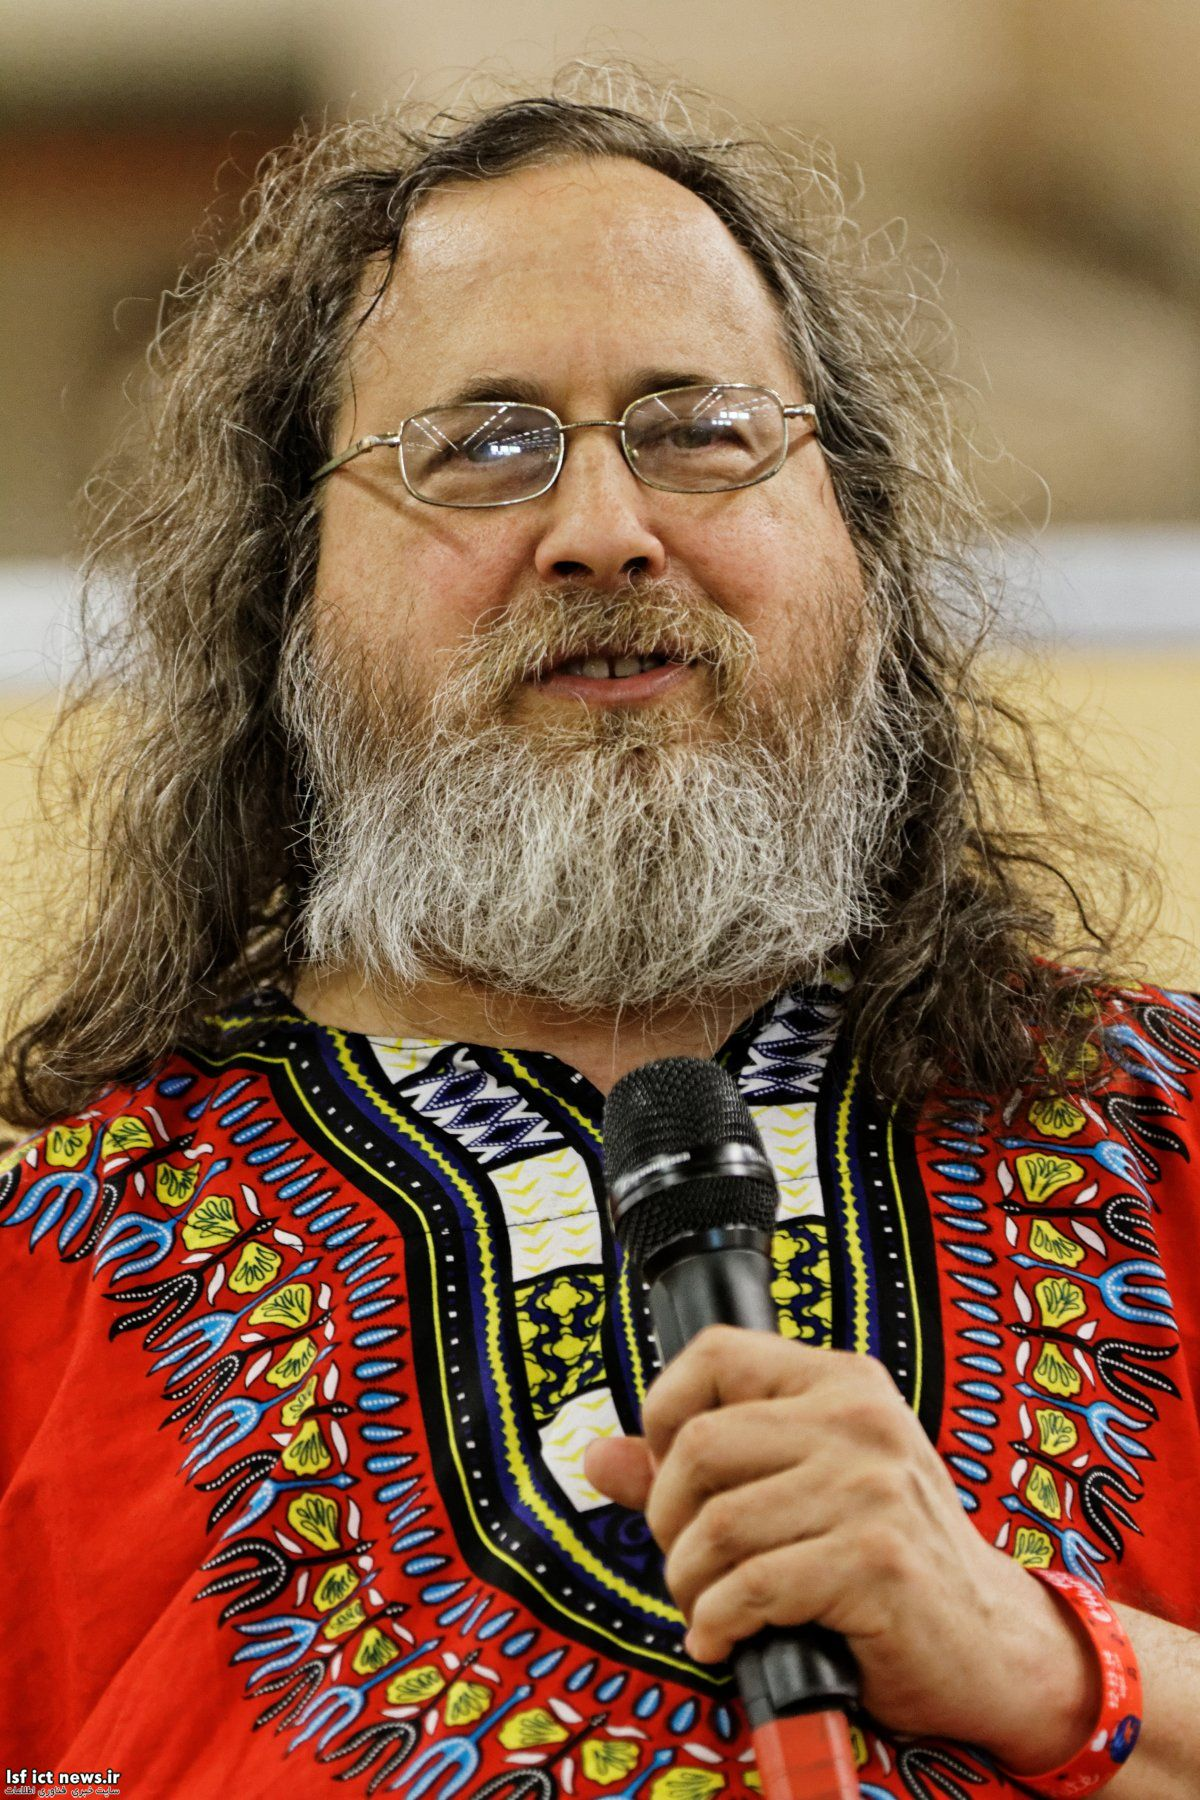 richard stallman has been fighting for software freedom since the eighties spearheading multiple successful projects to spread programs and tools that arent owned by any one company